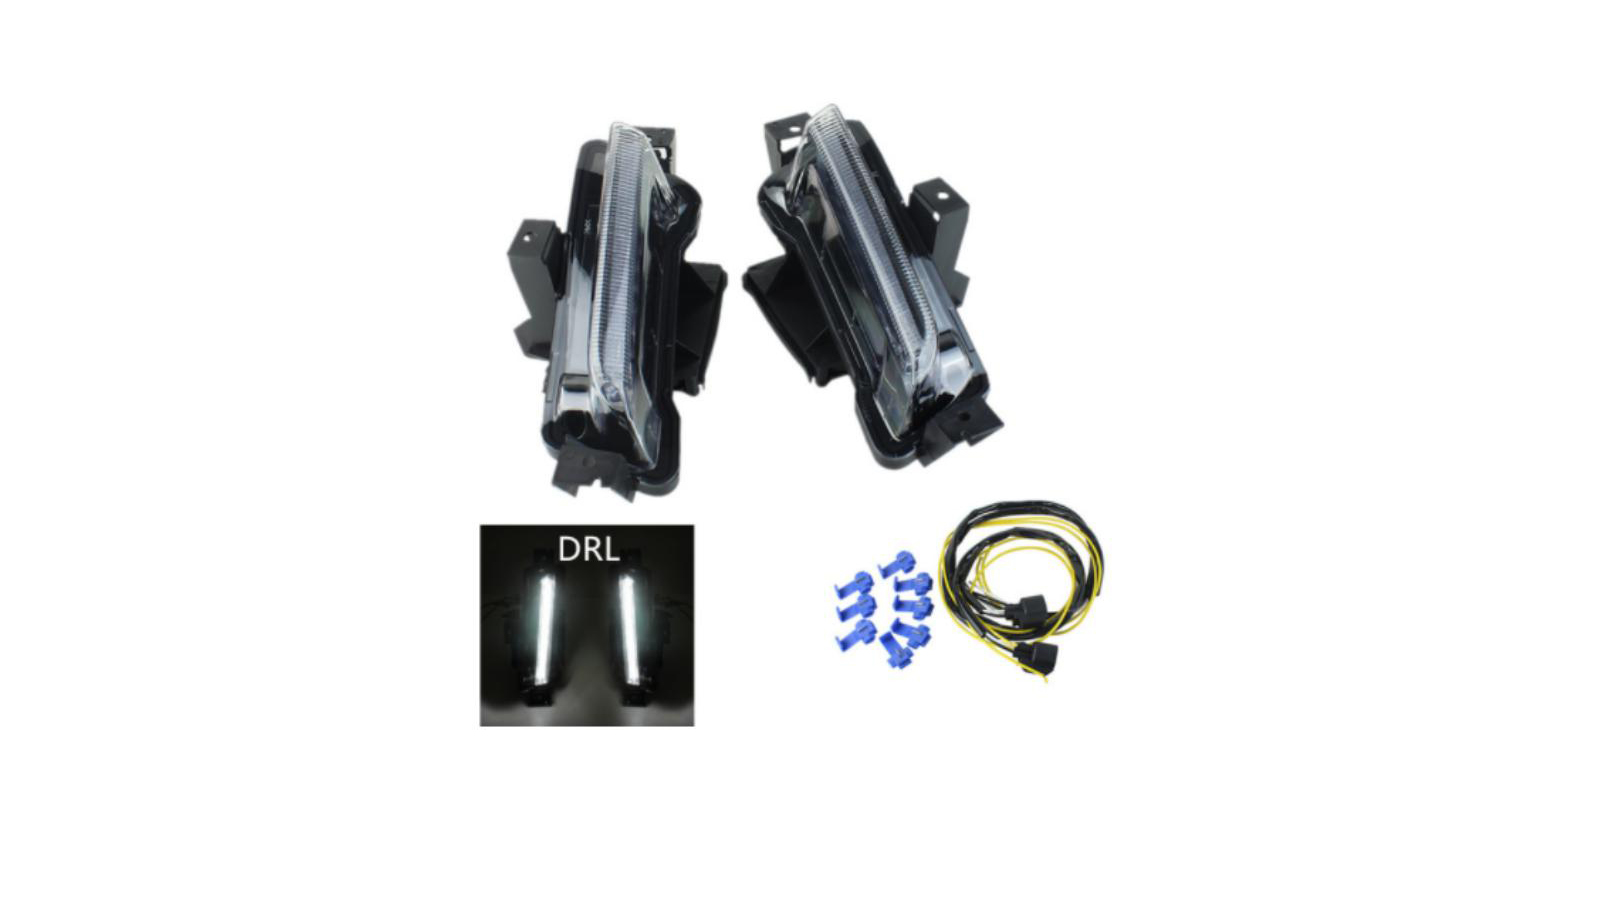 Best Quality White DRL Fog Lights No Turn Signal Function For Chevy Camaro ZL1 1LT RS 2016+ Factory